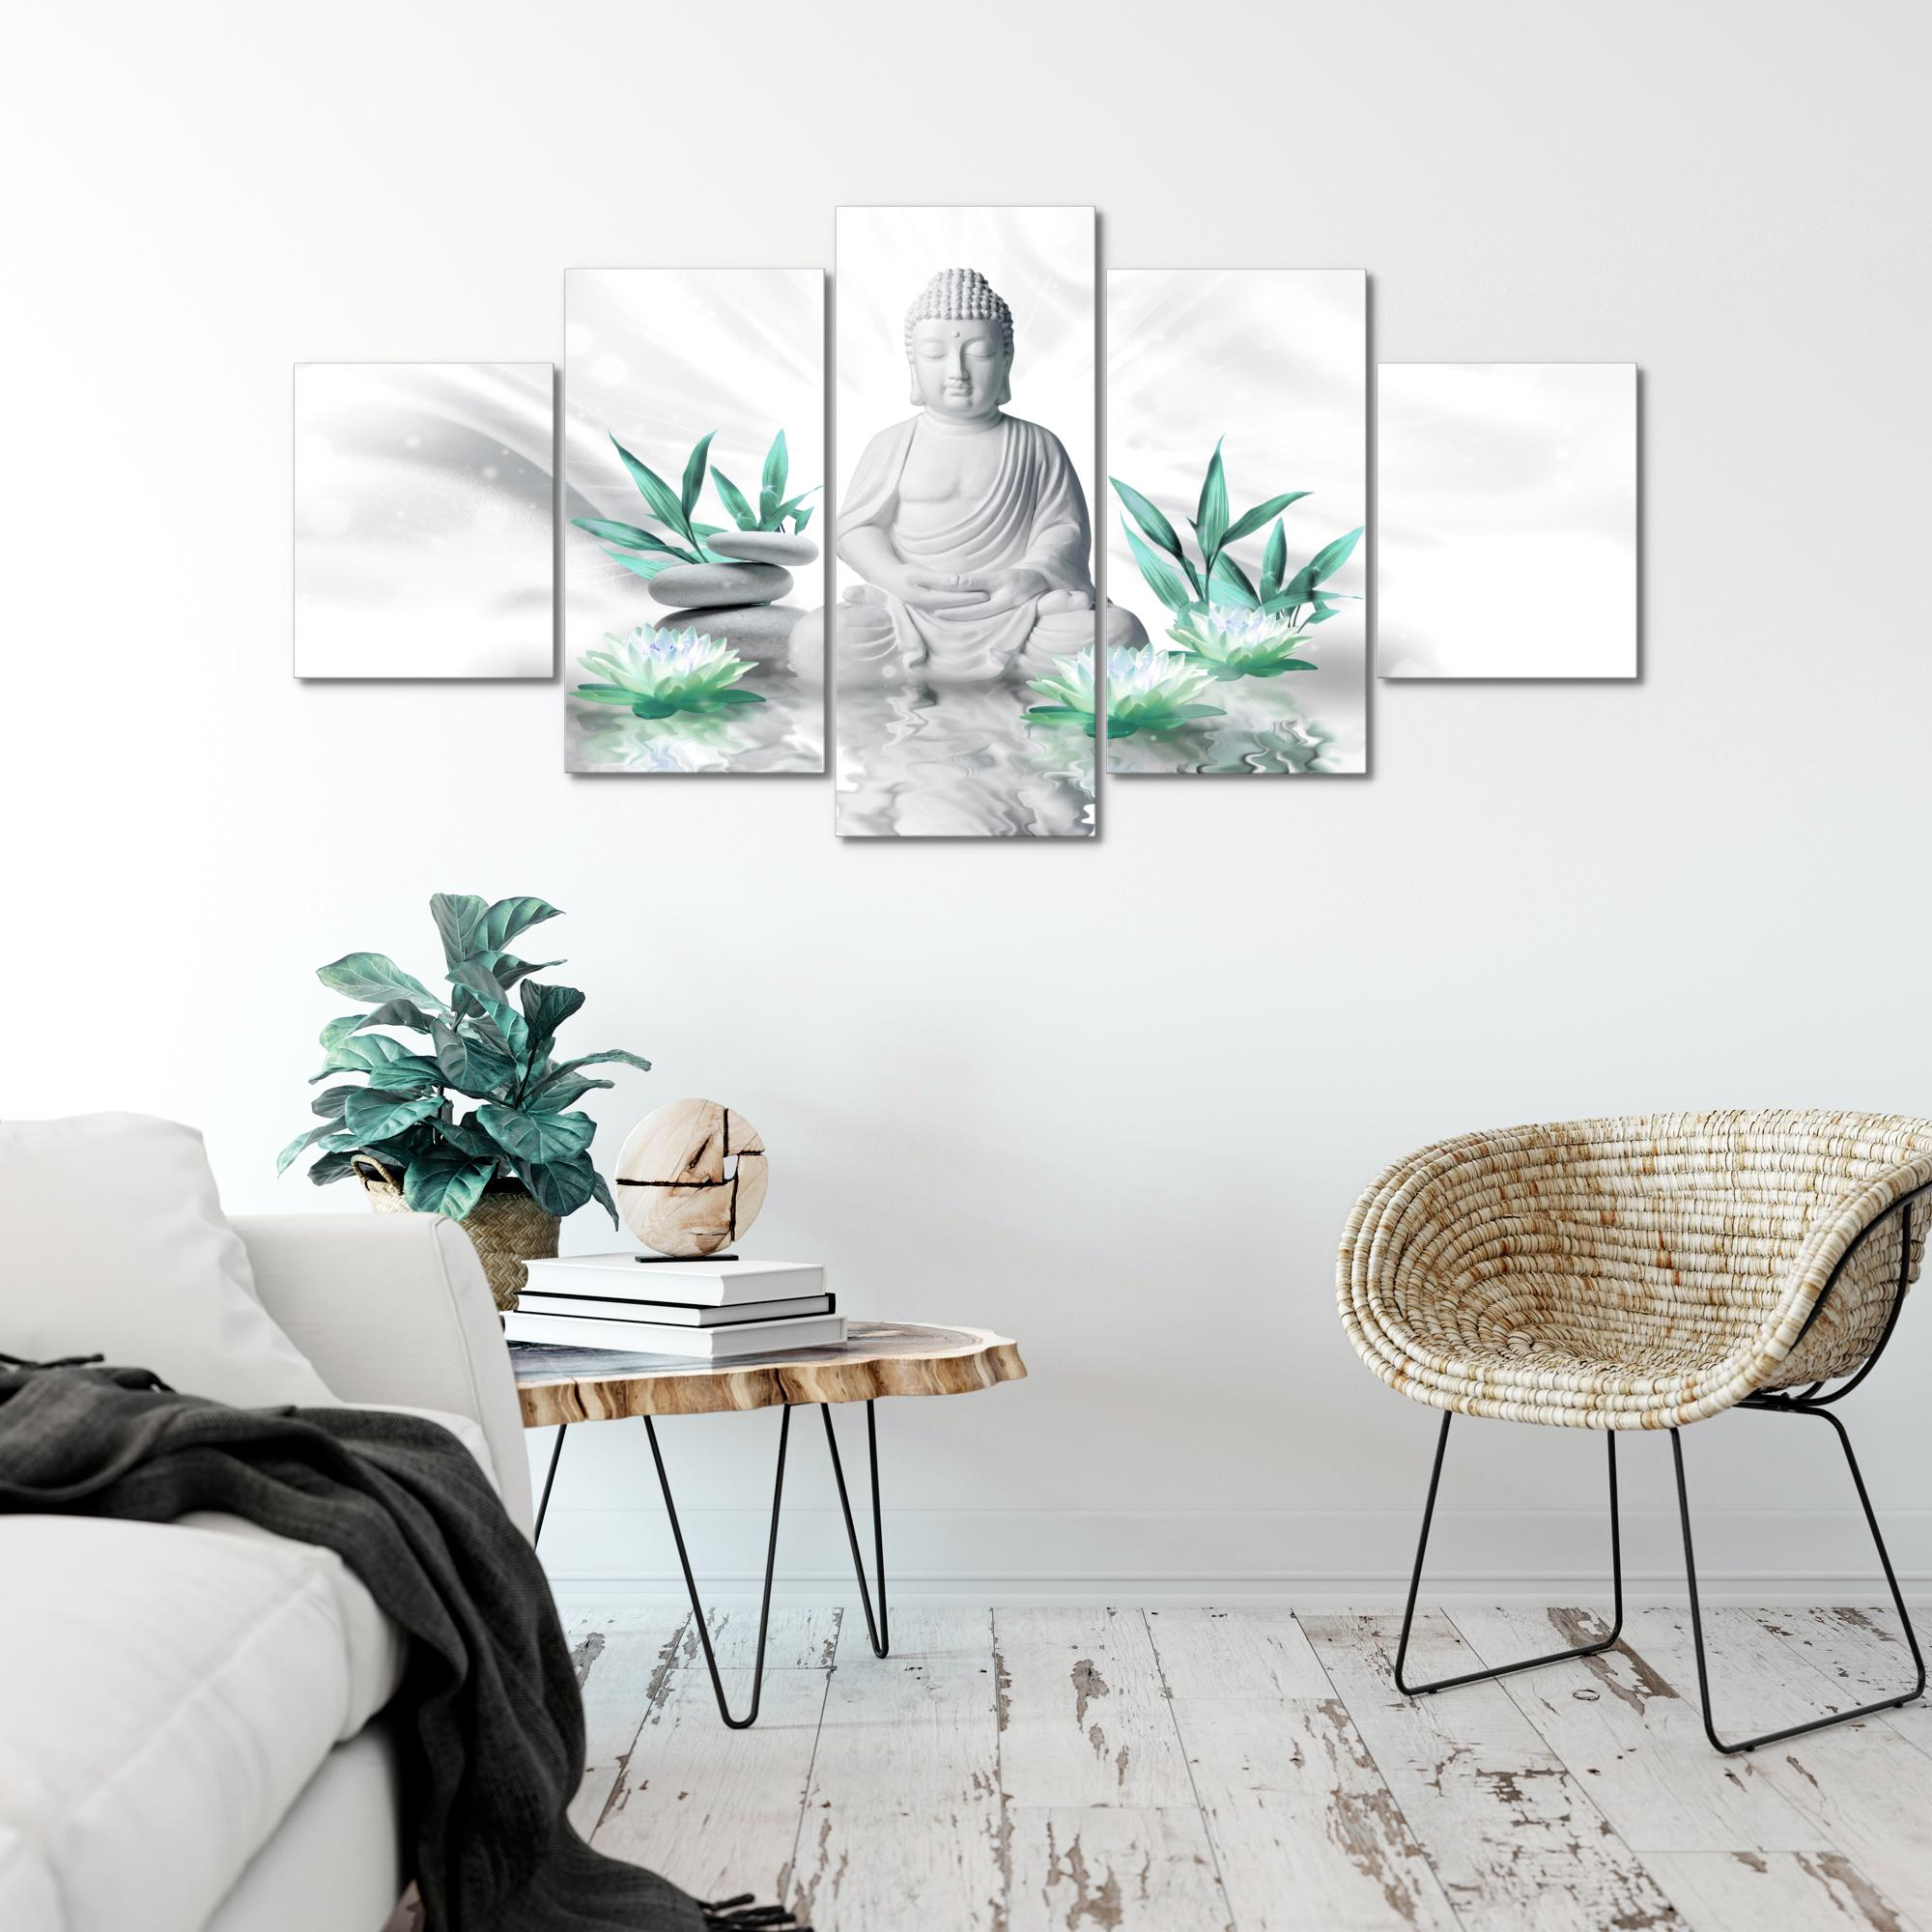 buddha feng shui bild kunstdruck auf vlies leinwand xxl dekoration 01165p. Black Bedroom Furniture Sets. Home Design Ideas